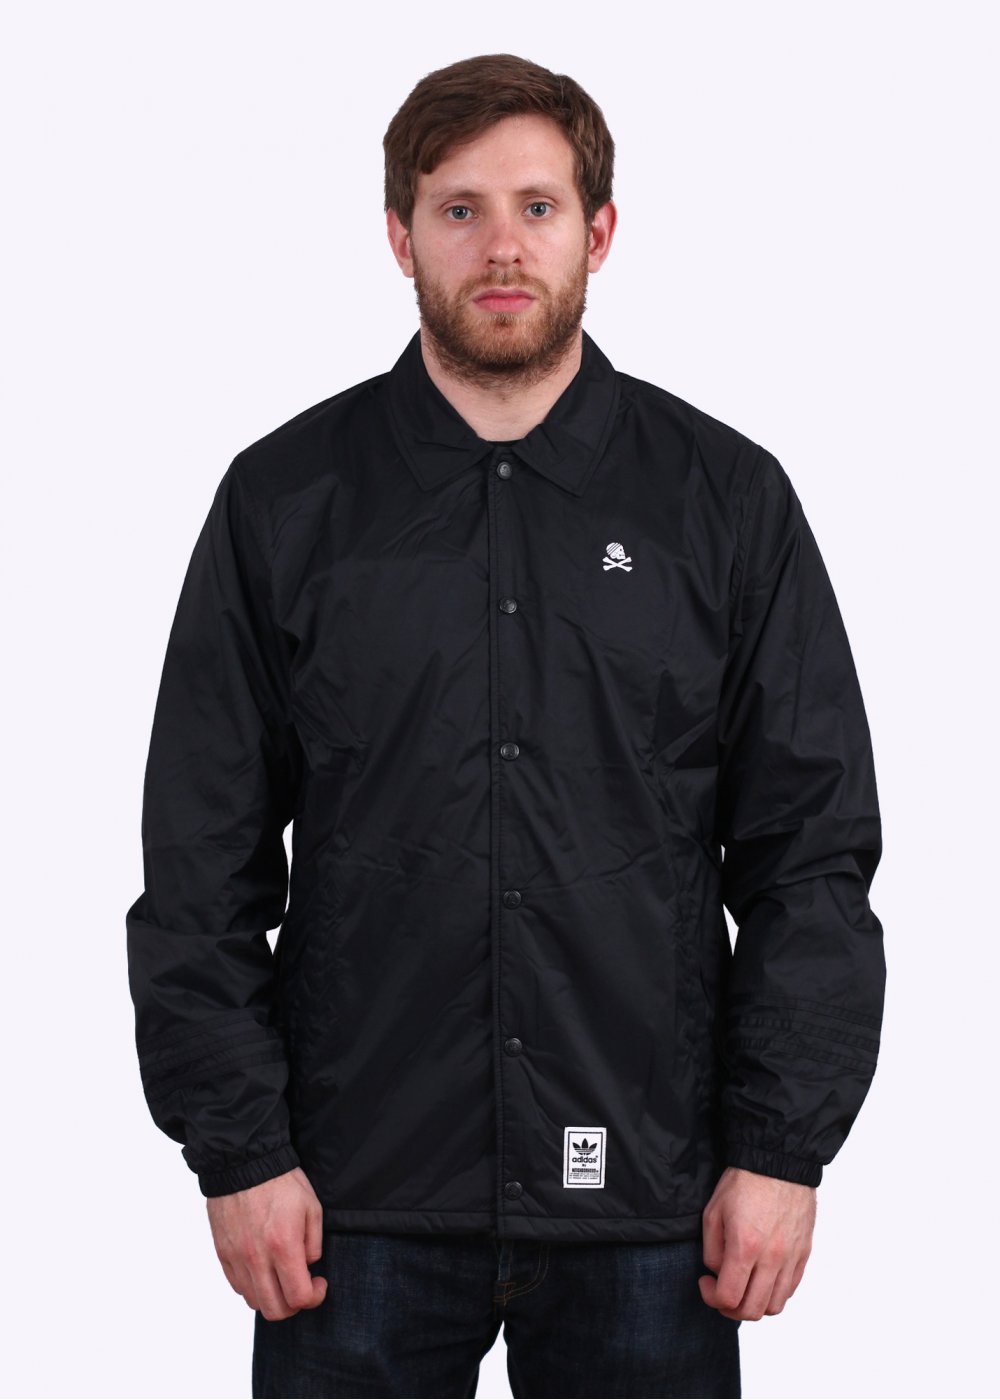 adidas Originals Apparel x Neighborhood Coach Jacket Black